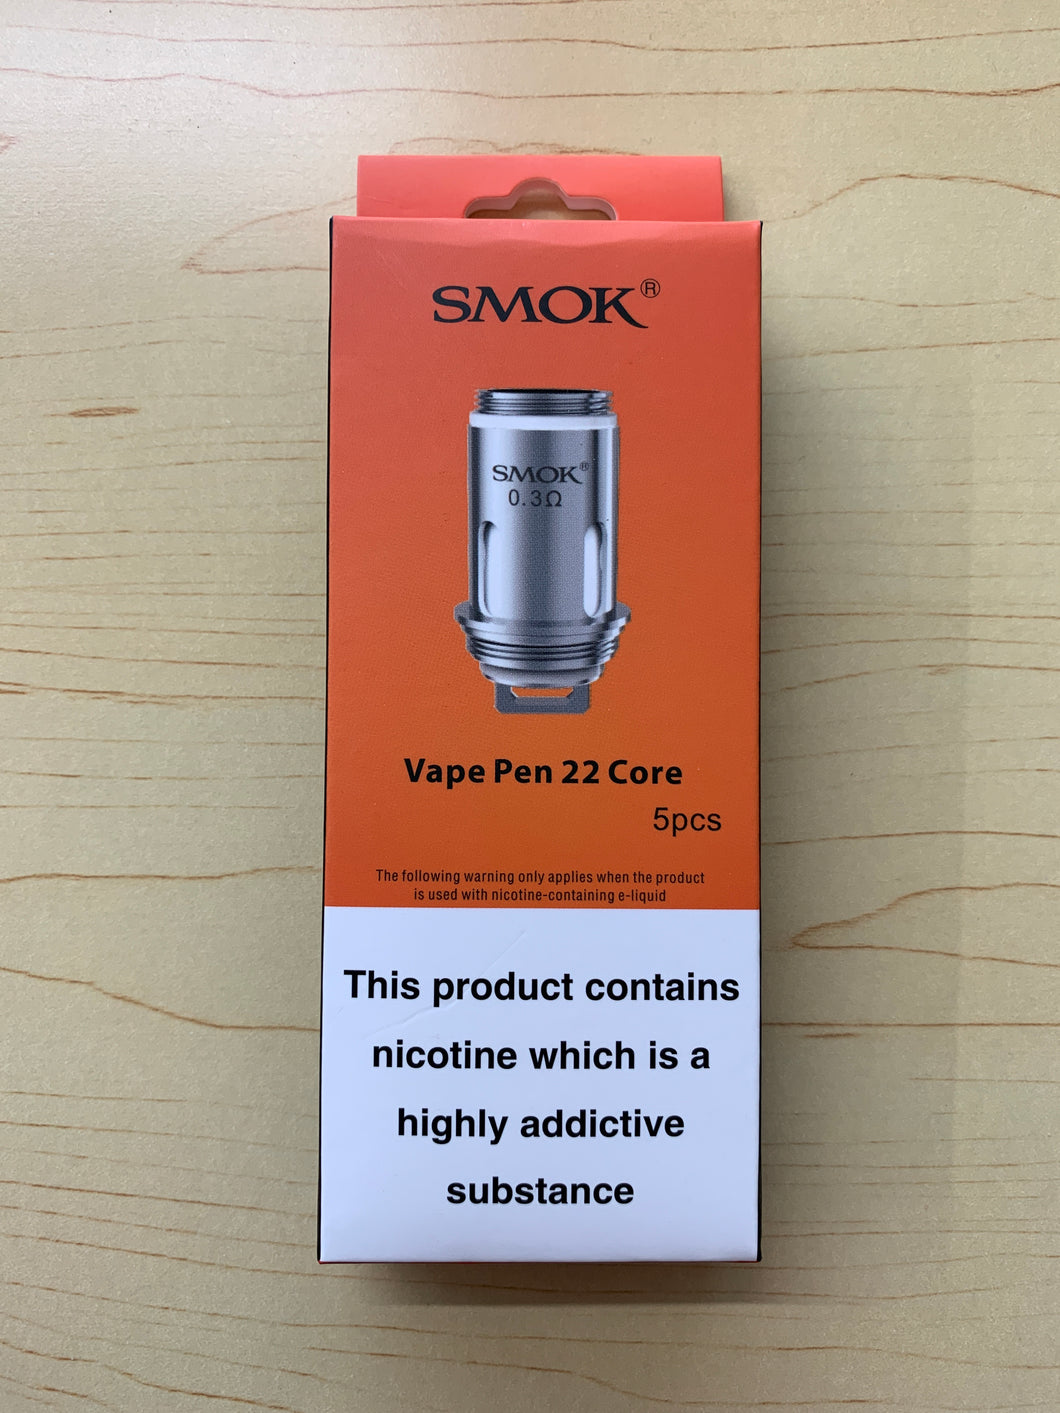 Smok Vape Pen 22 pack of 5